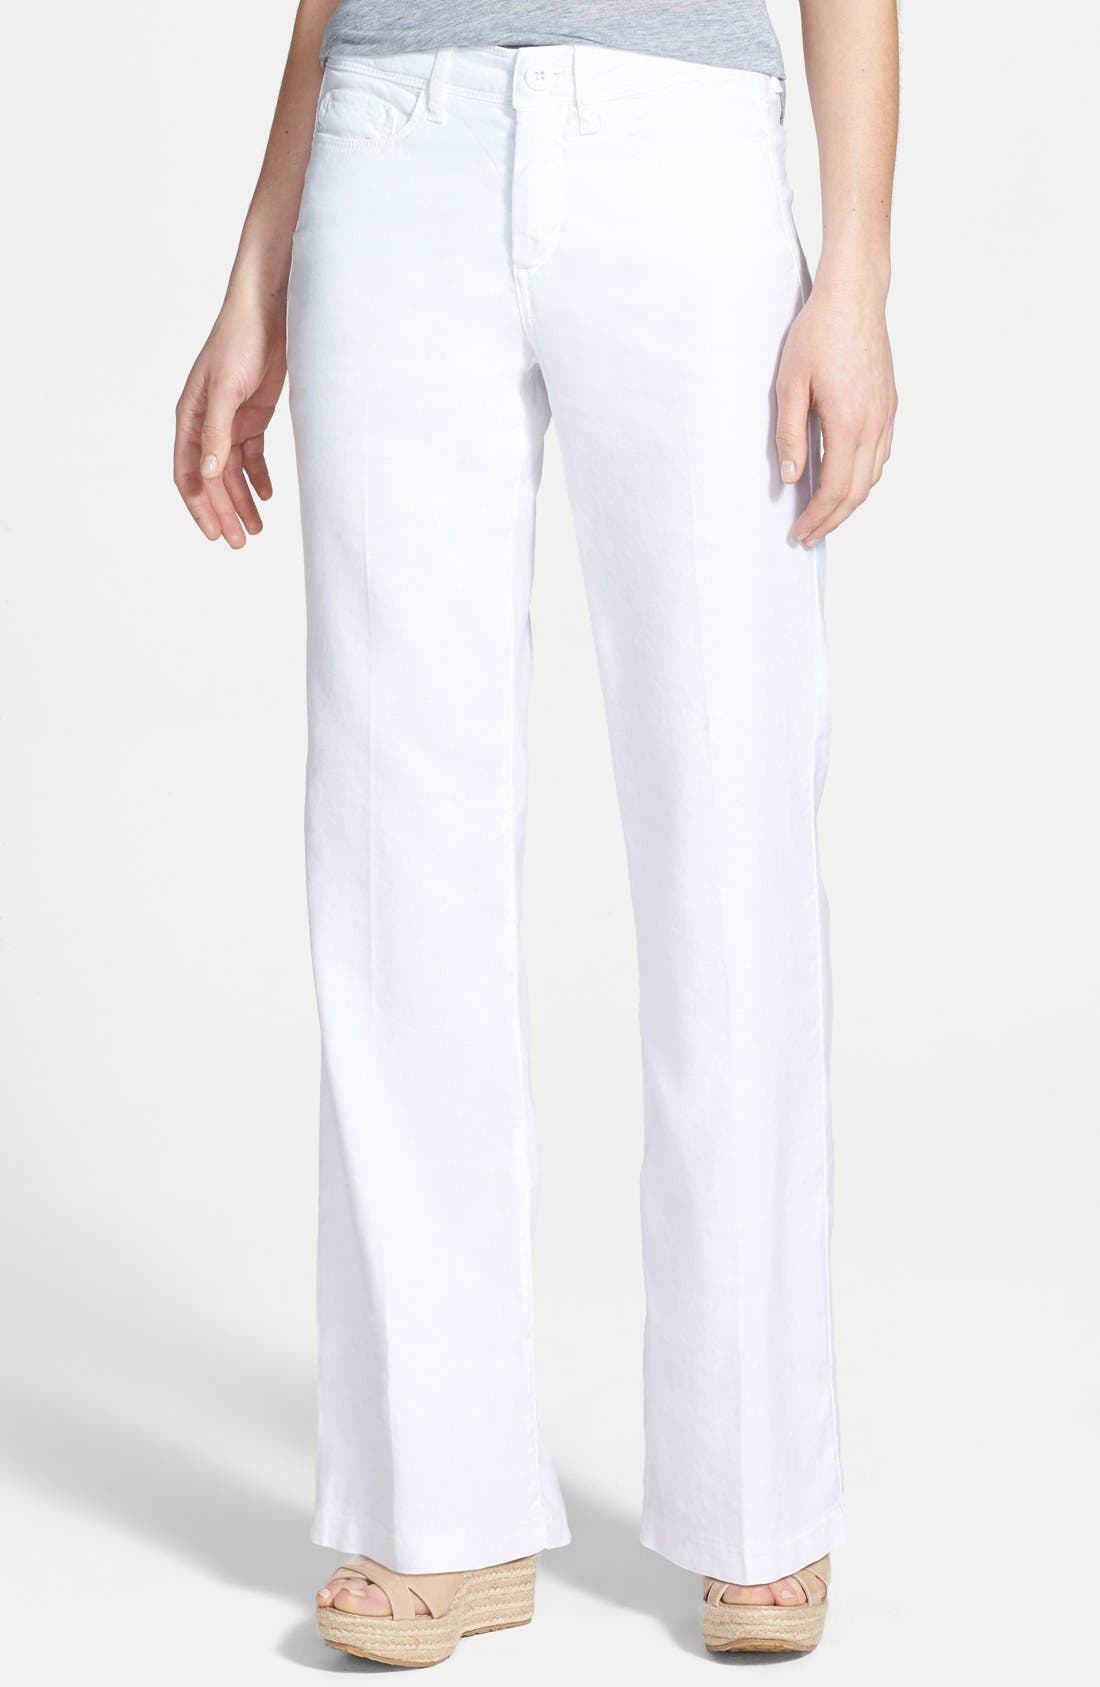 Alternate Image 1 Selected - NYDJ 'Wylie' Stretch Linen Trousers (Plus Size)